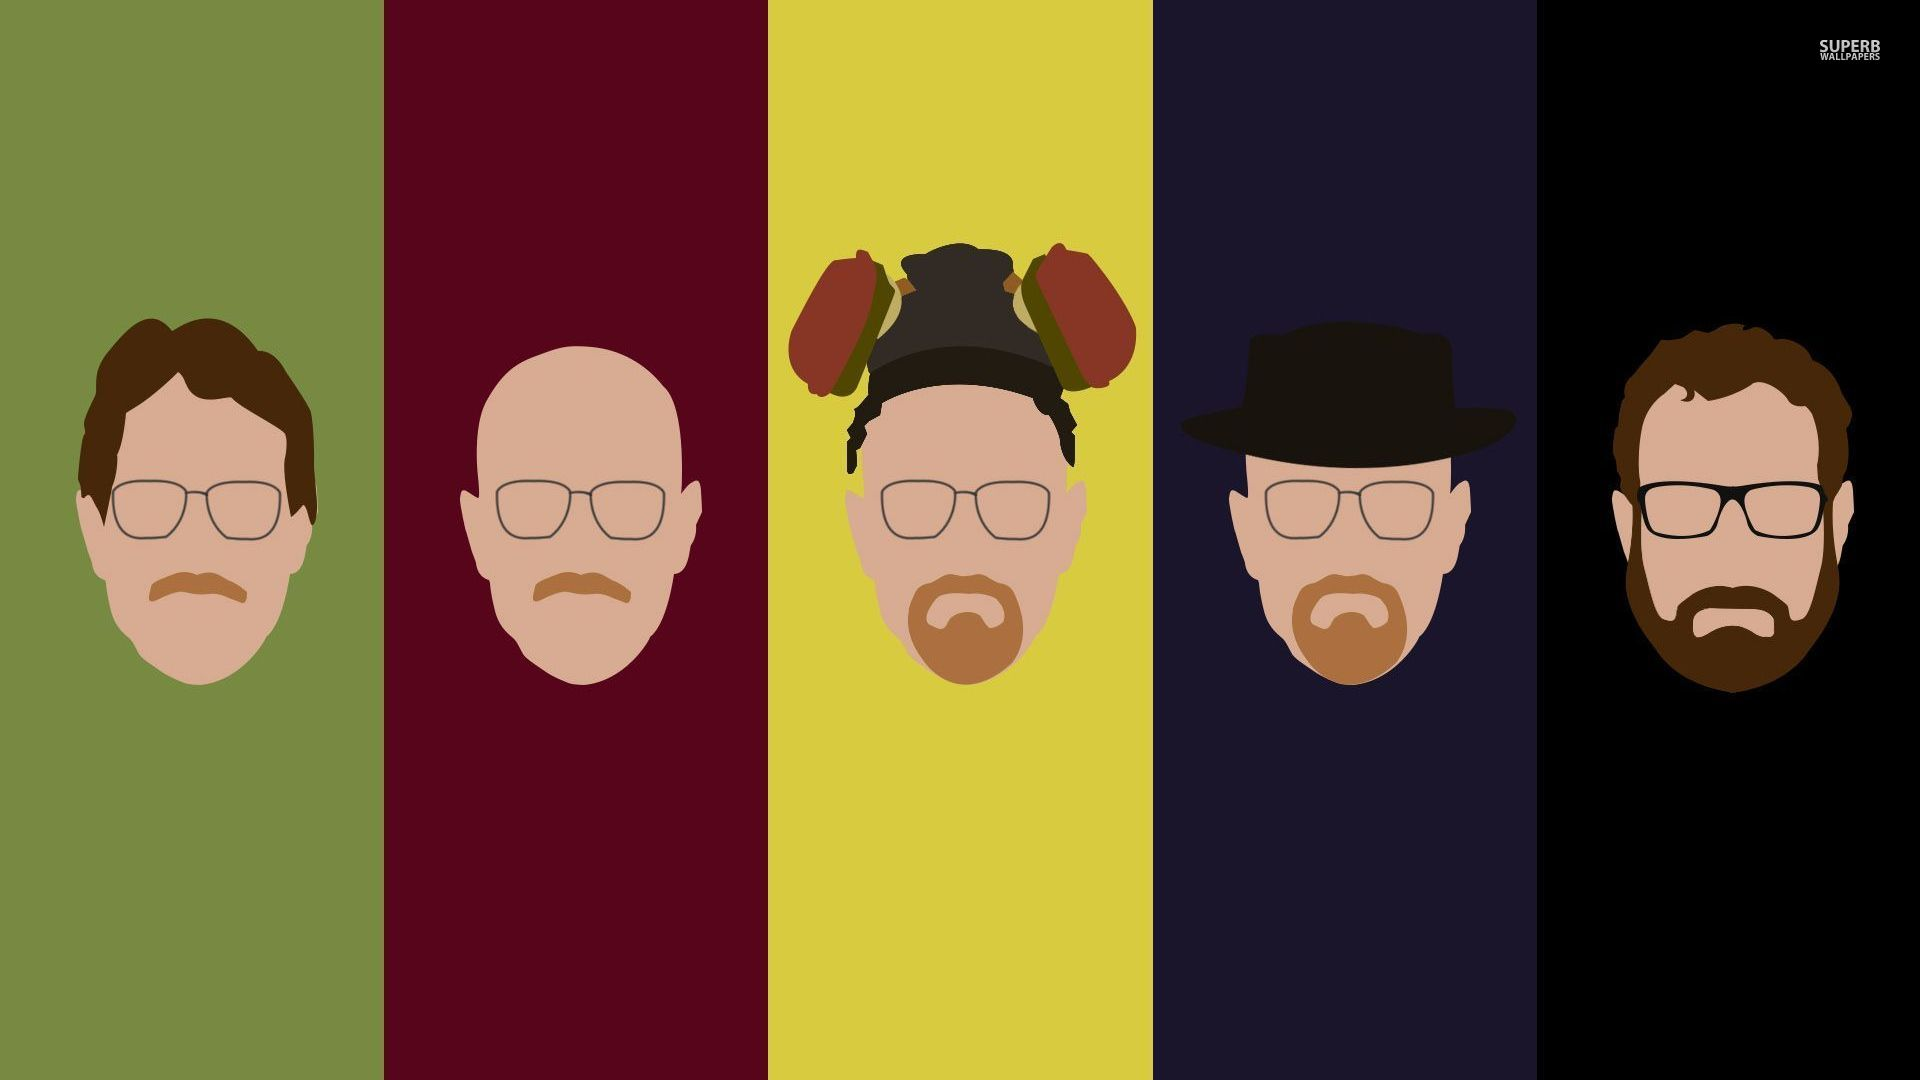 Wallpaper Breaking Bad HD Gratuit à Télécharger Sur NGN Mag